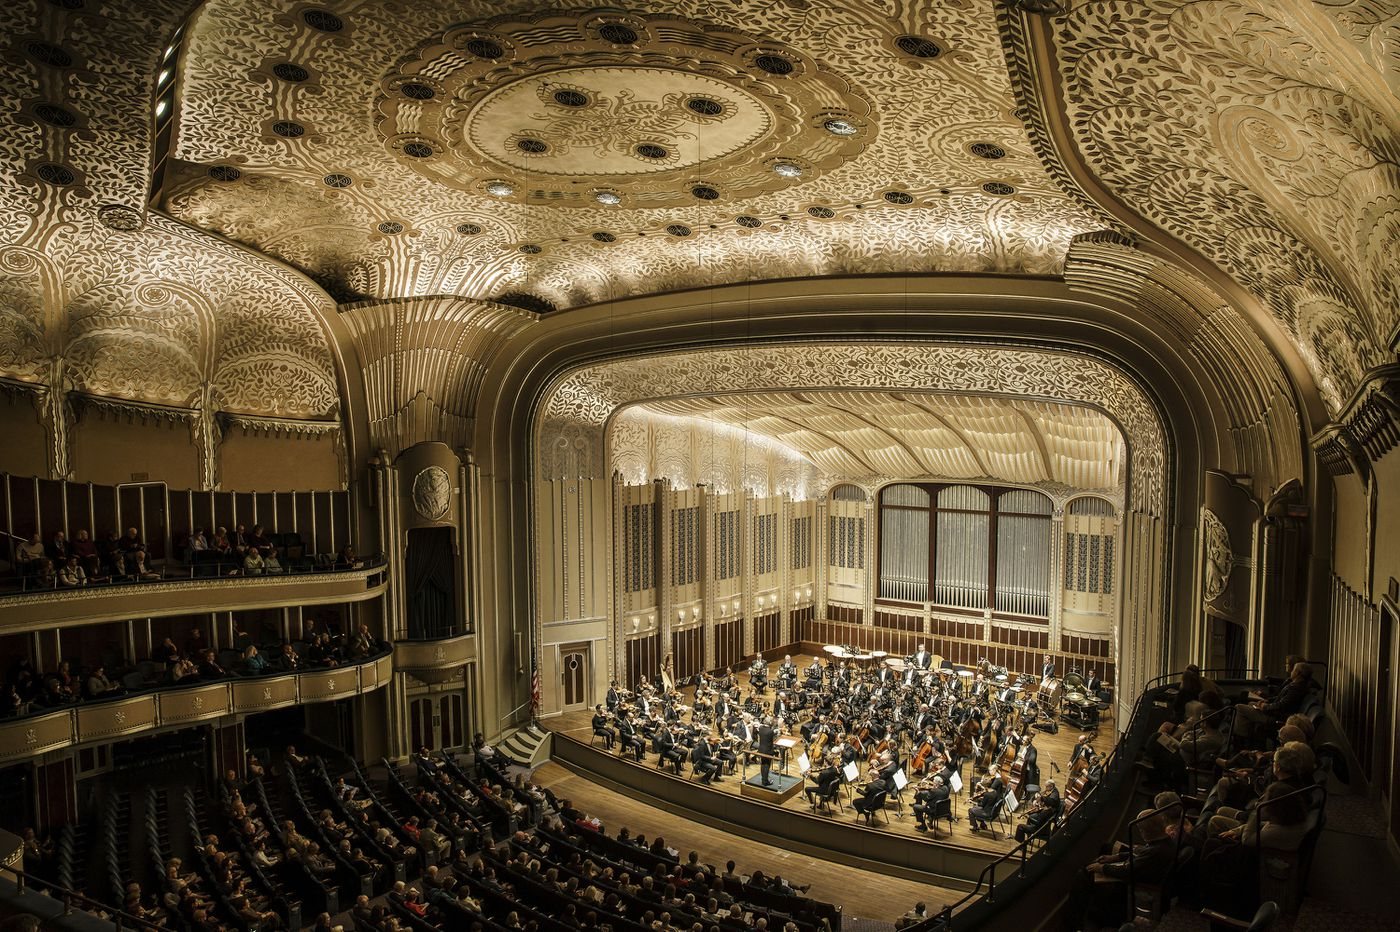 In this Cleveland hall, classical music is king (and ancient Egypt meets the jazz age)